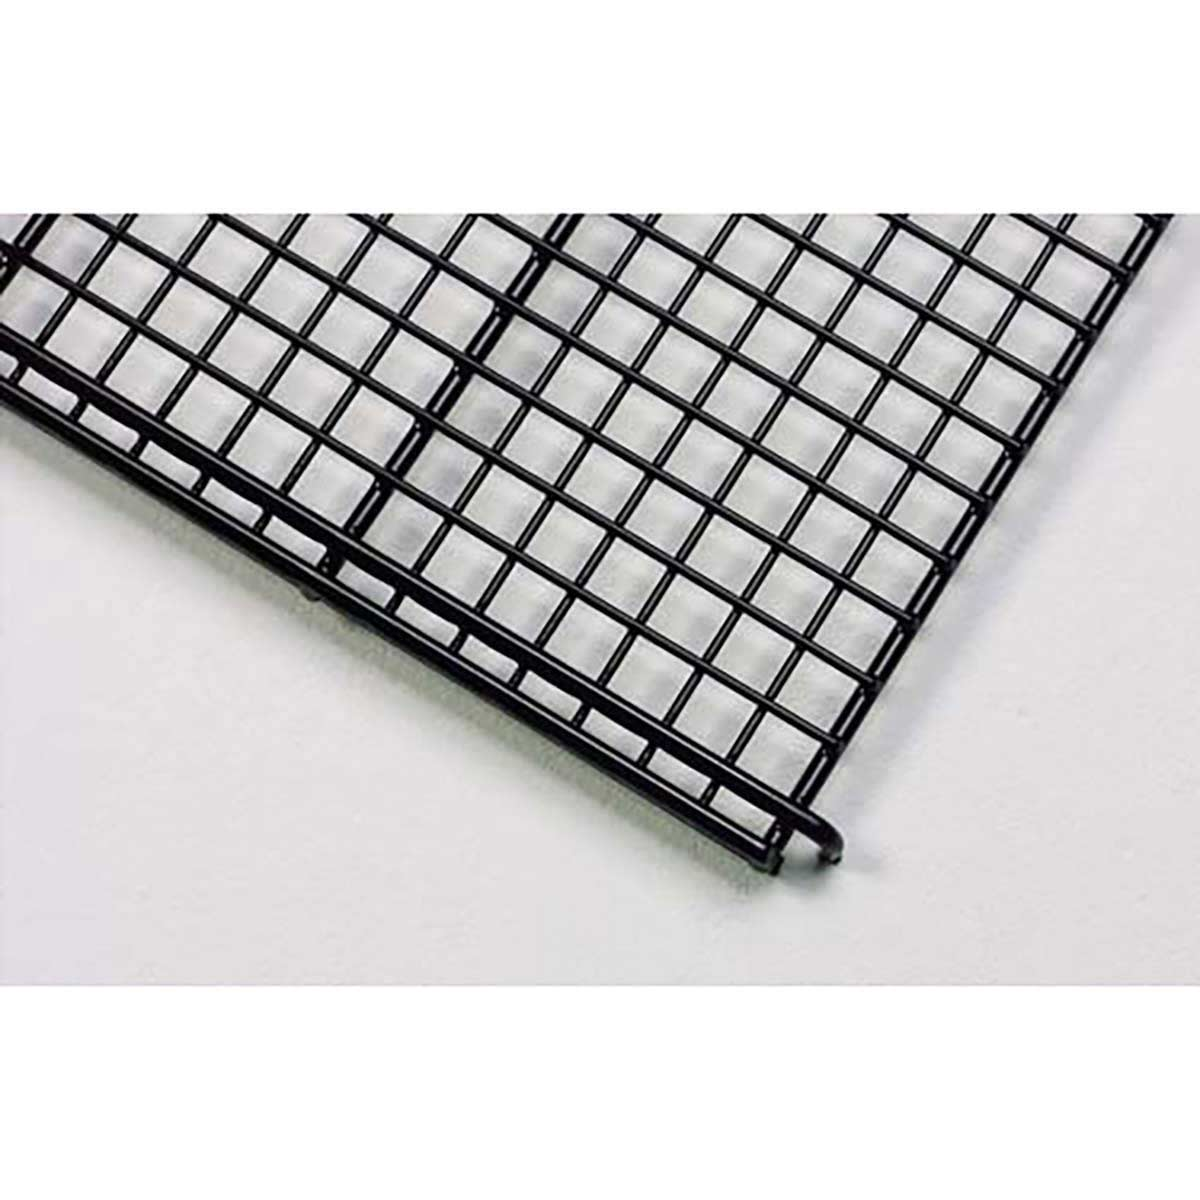 Midwest Floor Grids For 23610F Playpen Set of 2